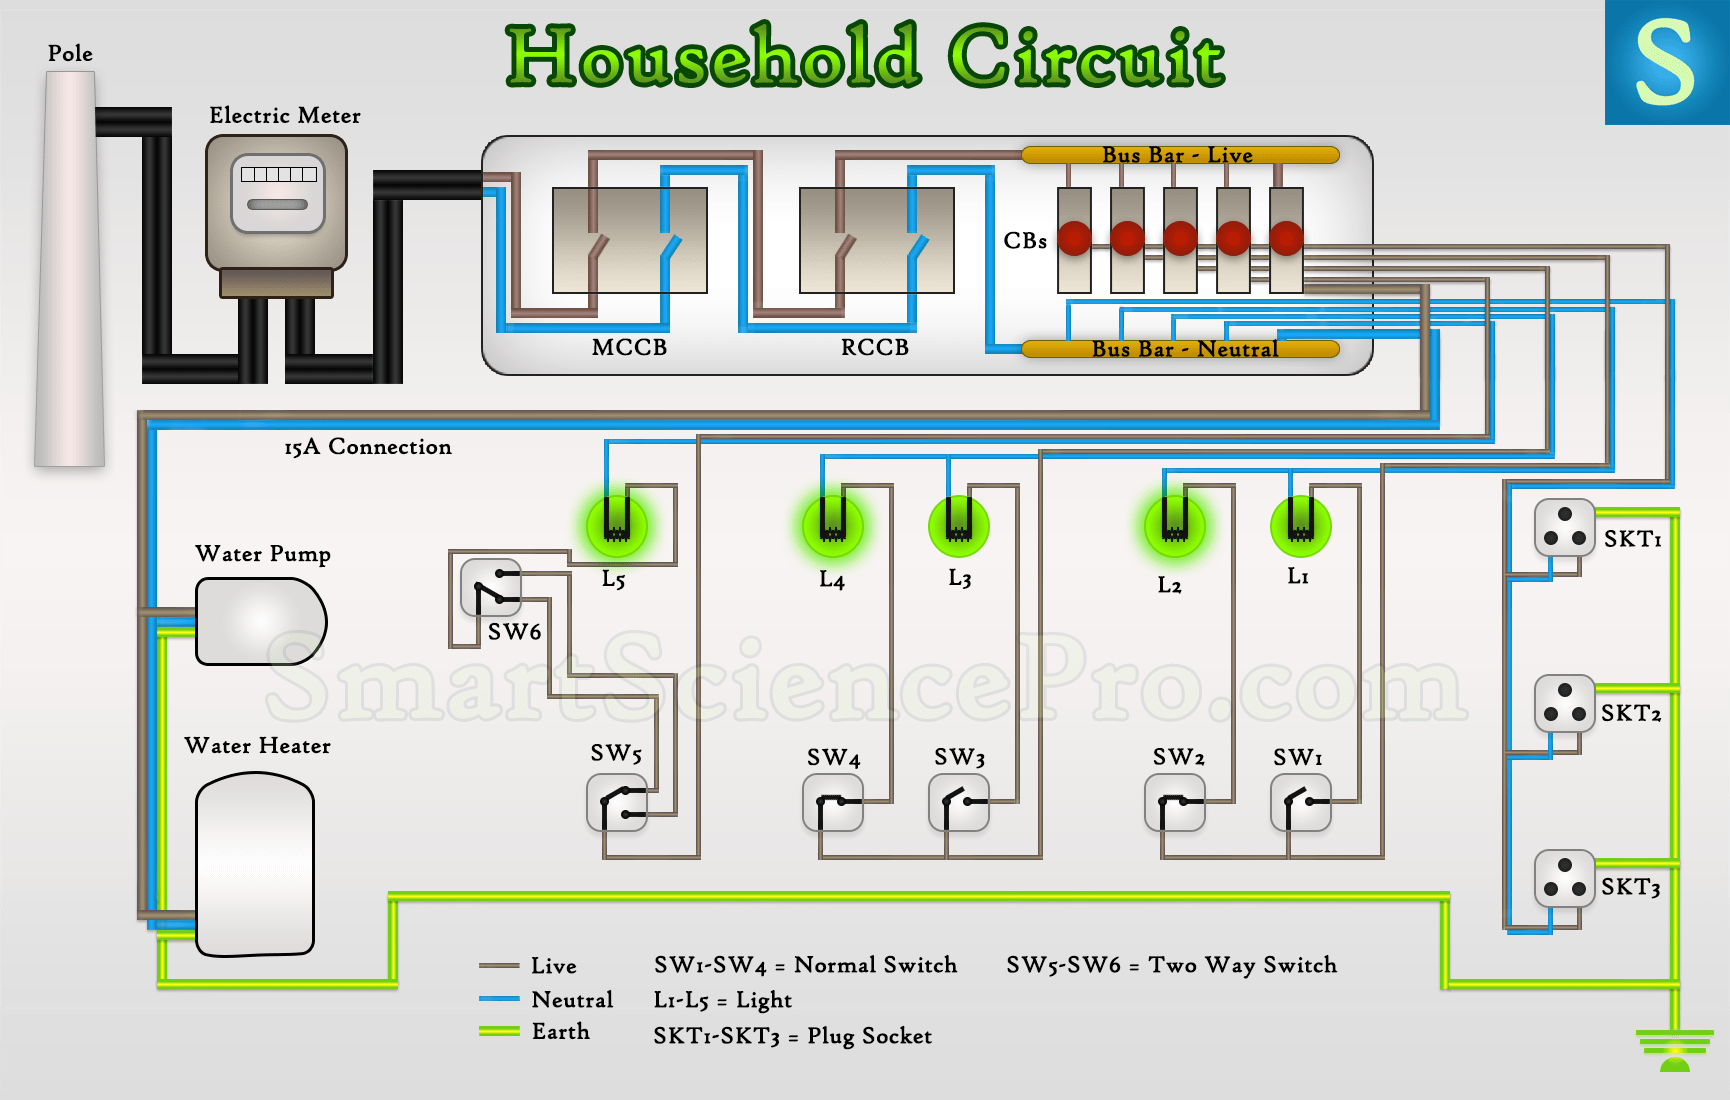 basic electrical parts \u0026 components of house wiring circuits \u2022 ssp Light and Outlet Wiring Diagrams